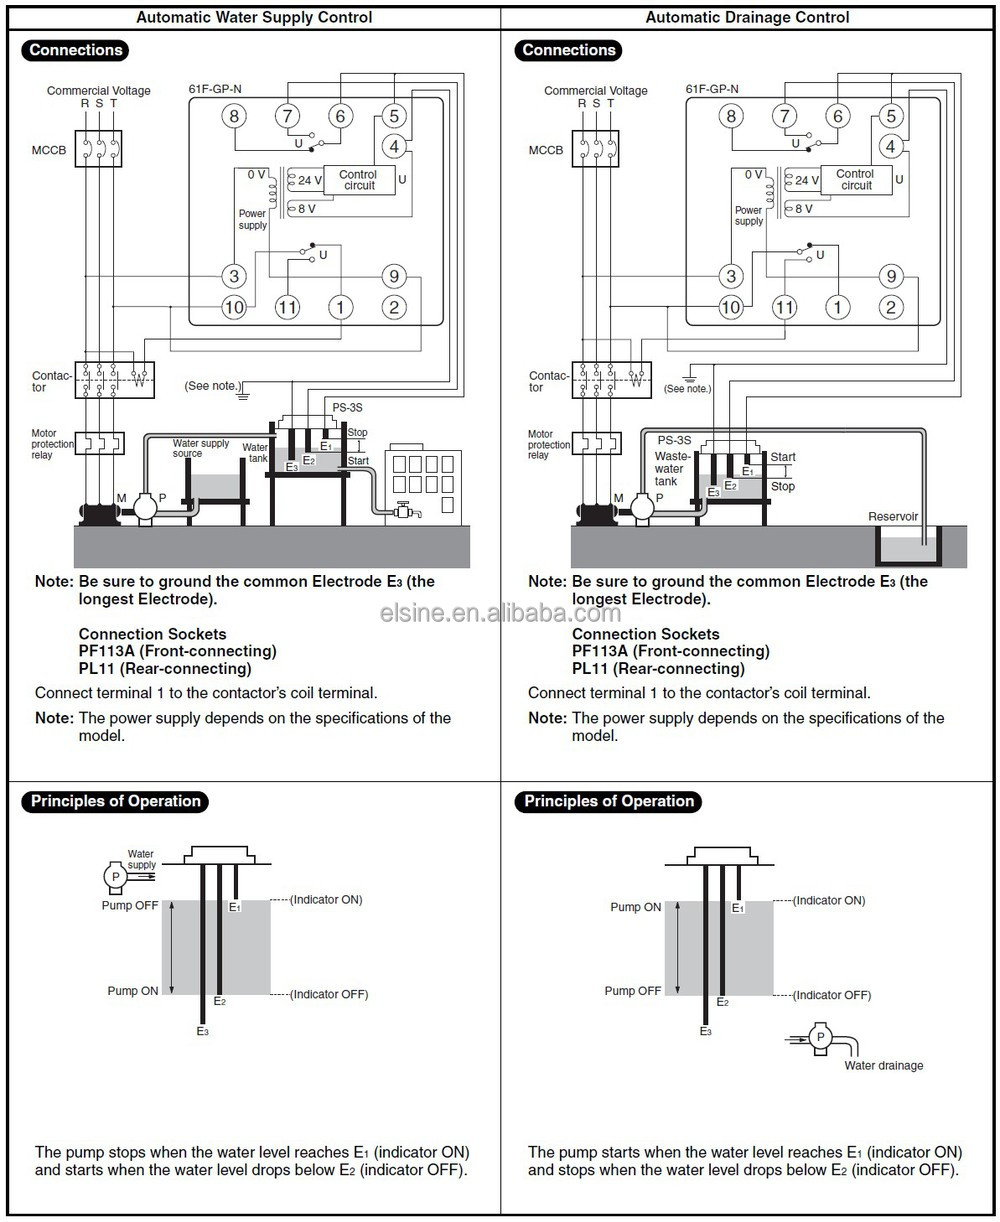 Wiring Diagram Omron 61fgap - Auto Electrical Wiring Diagram on